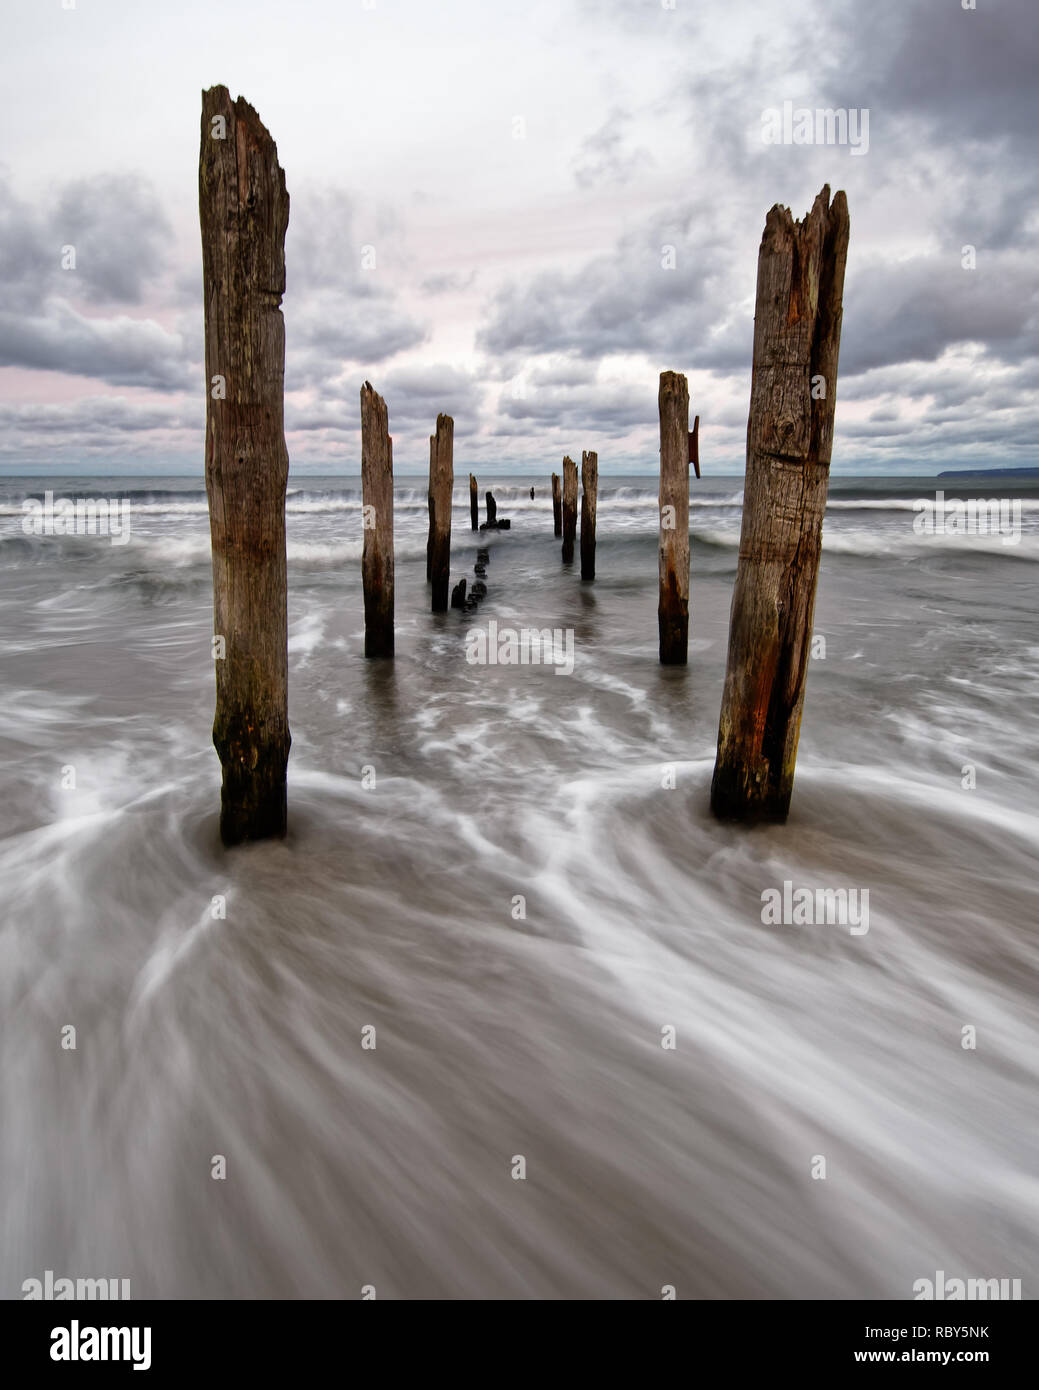 Wooden poles on Baltic Sea beach in high contrast evening light with clouds in windy weather, water movement in long exposure - Location: Baltic Sea,  - Stock Image